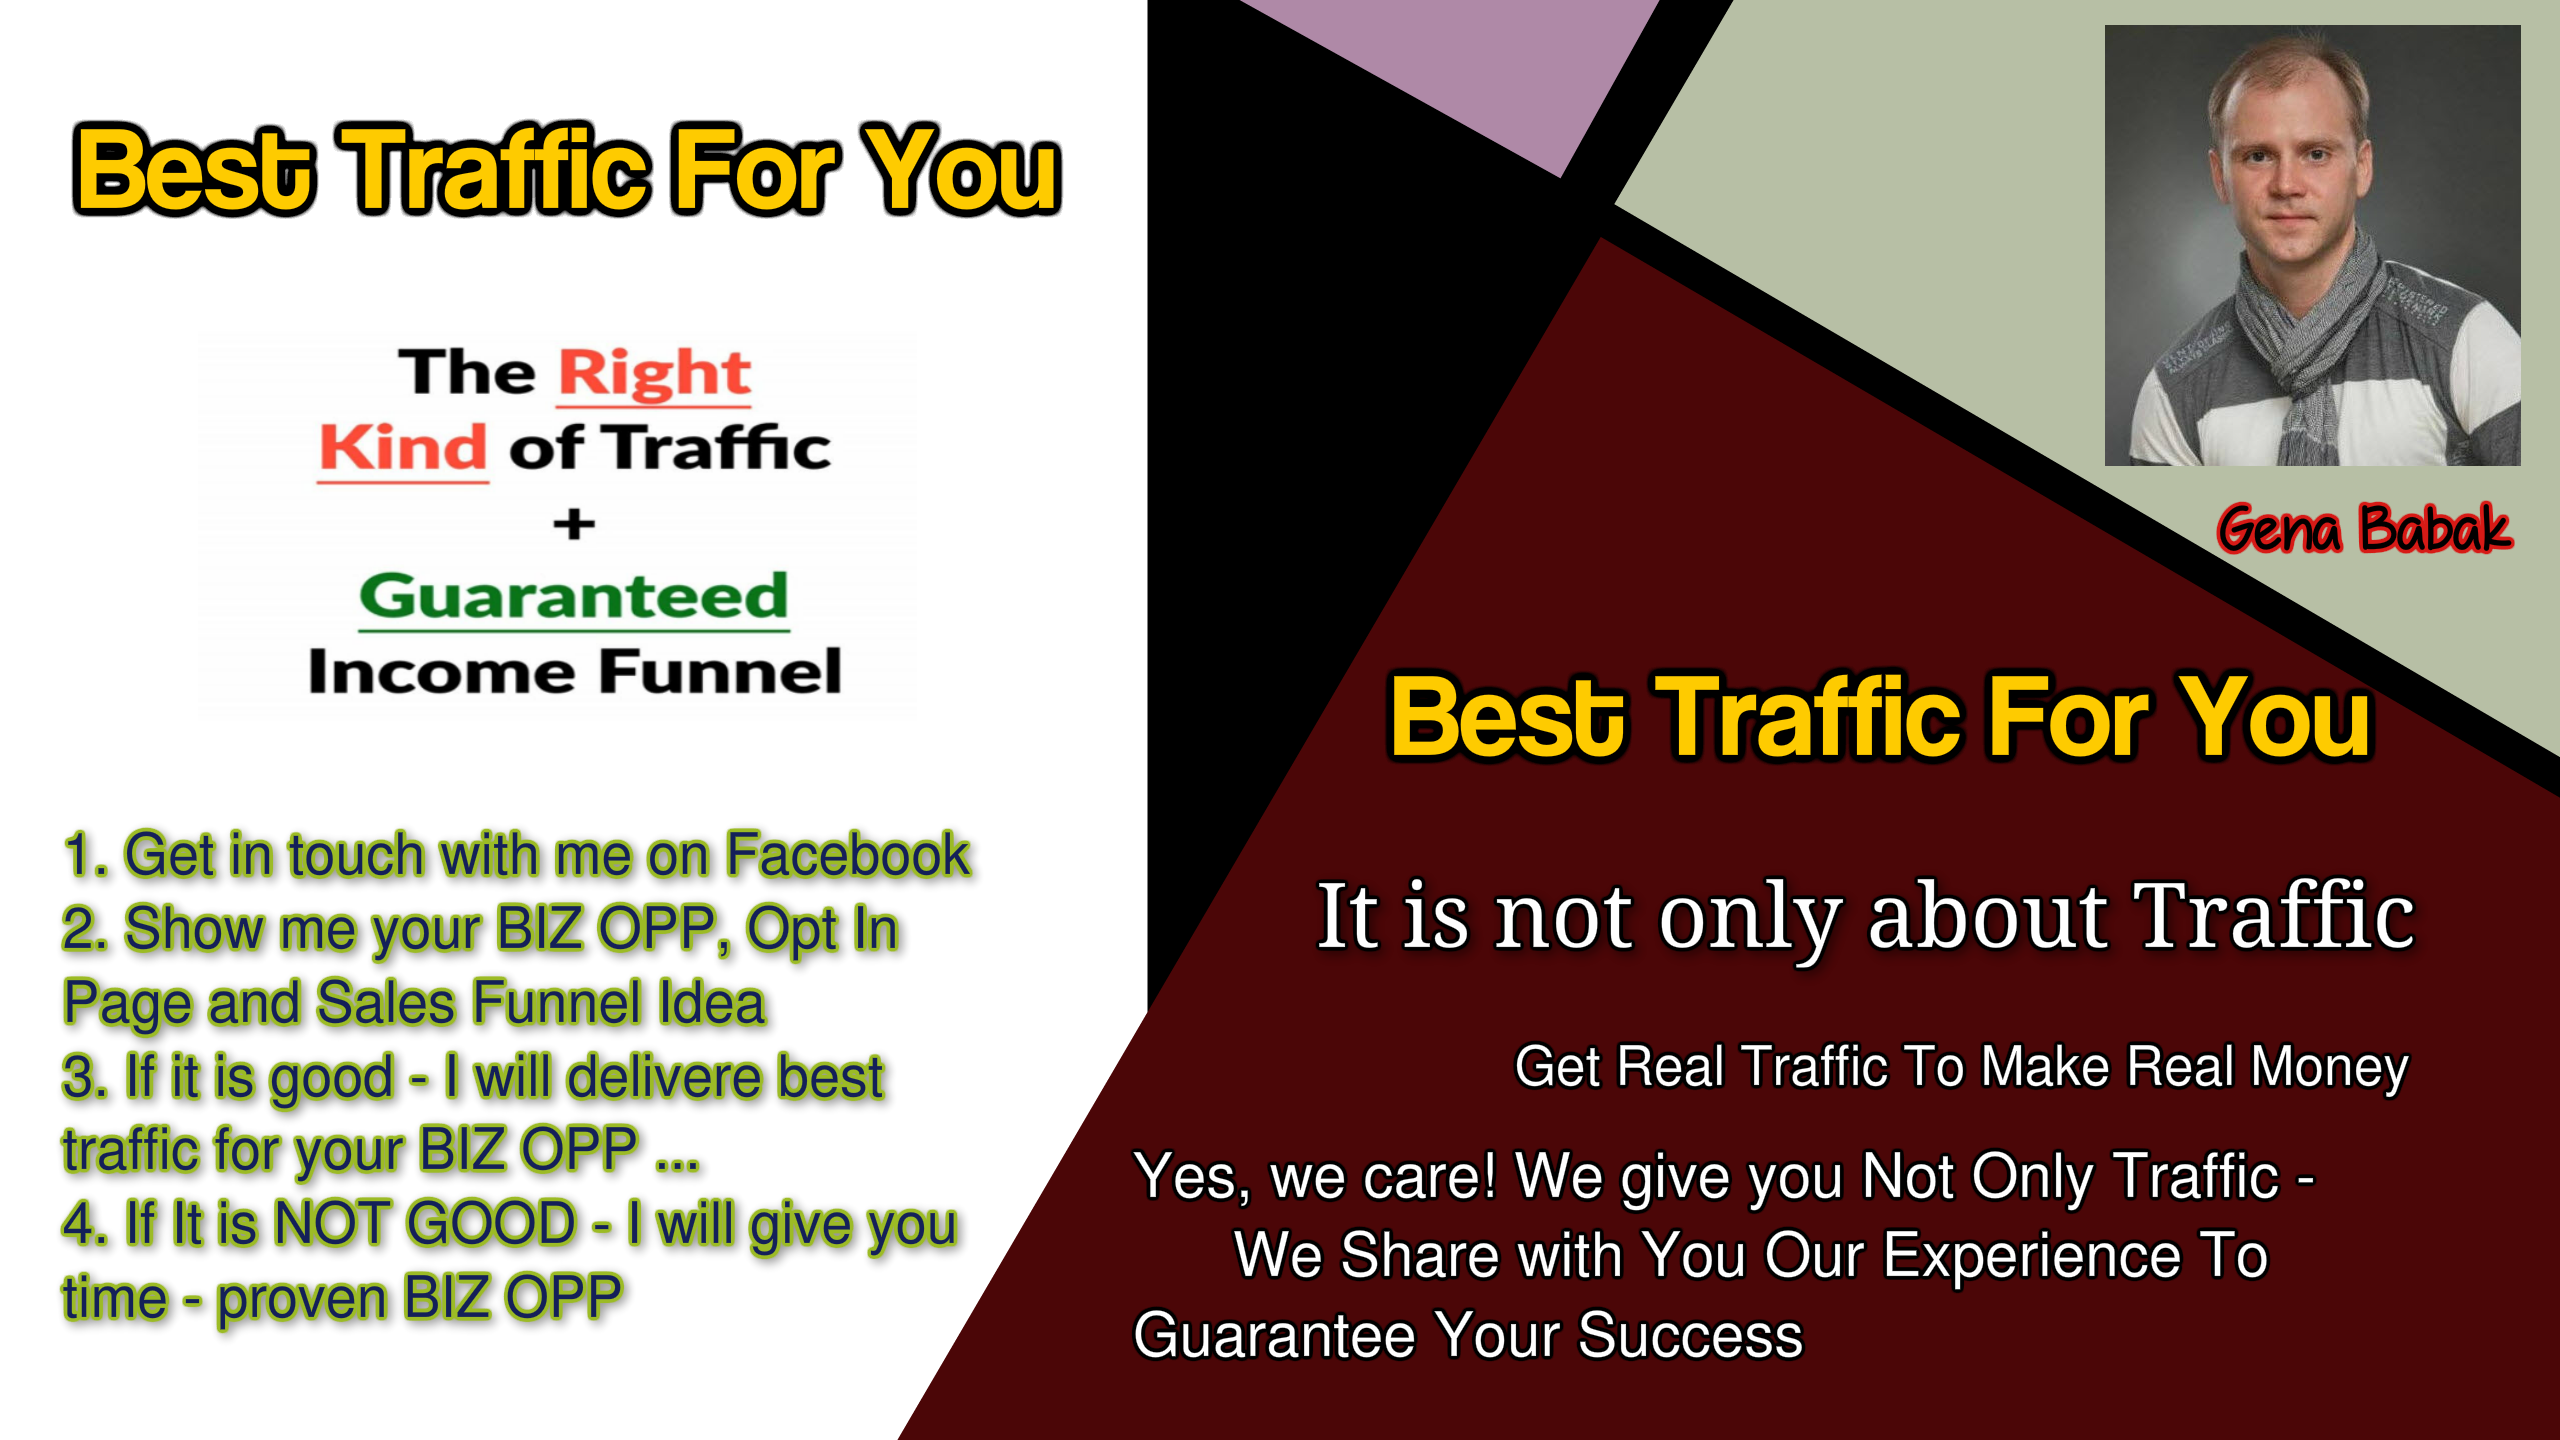 BEST PAID TRAFFIC FOR YOU